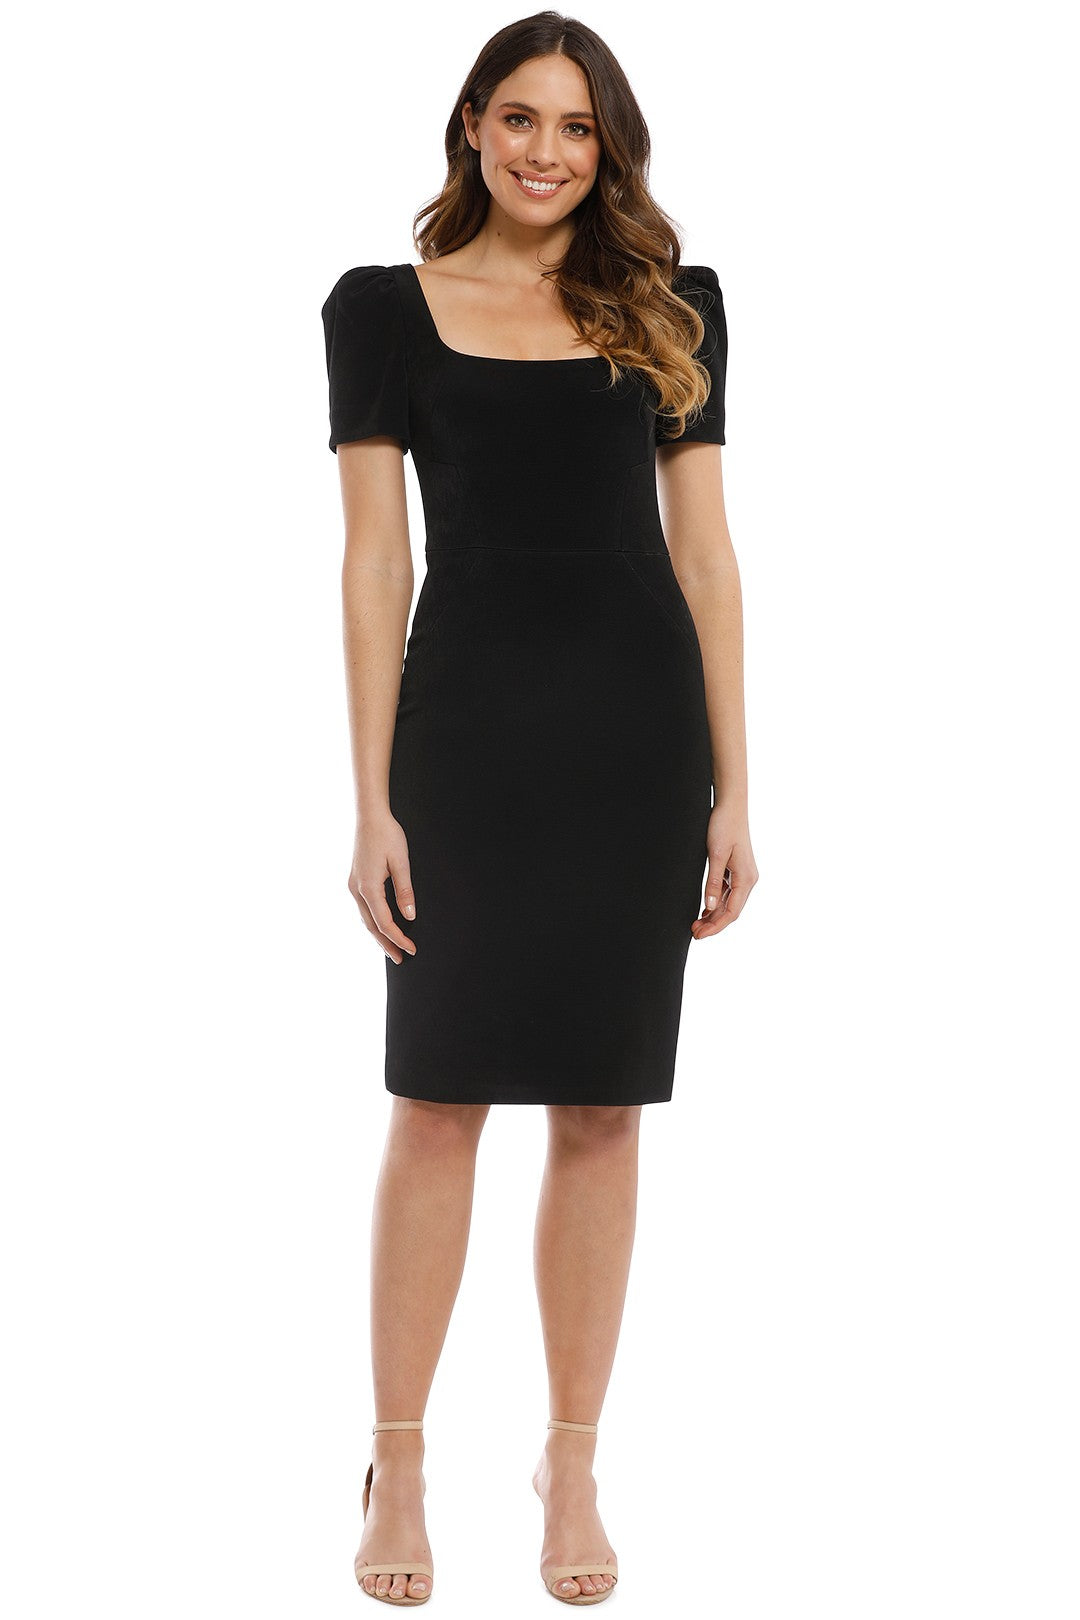 Rebecca Vallance Ivy Dress in Black